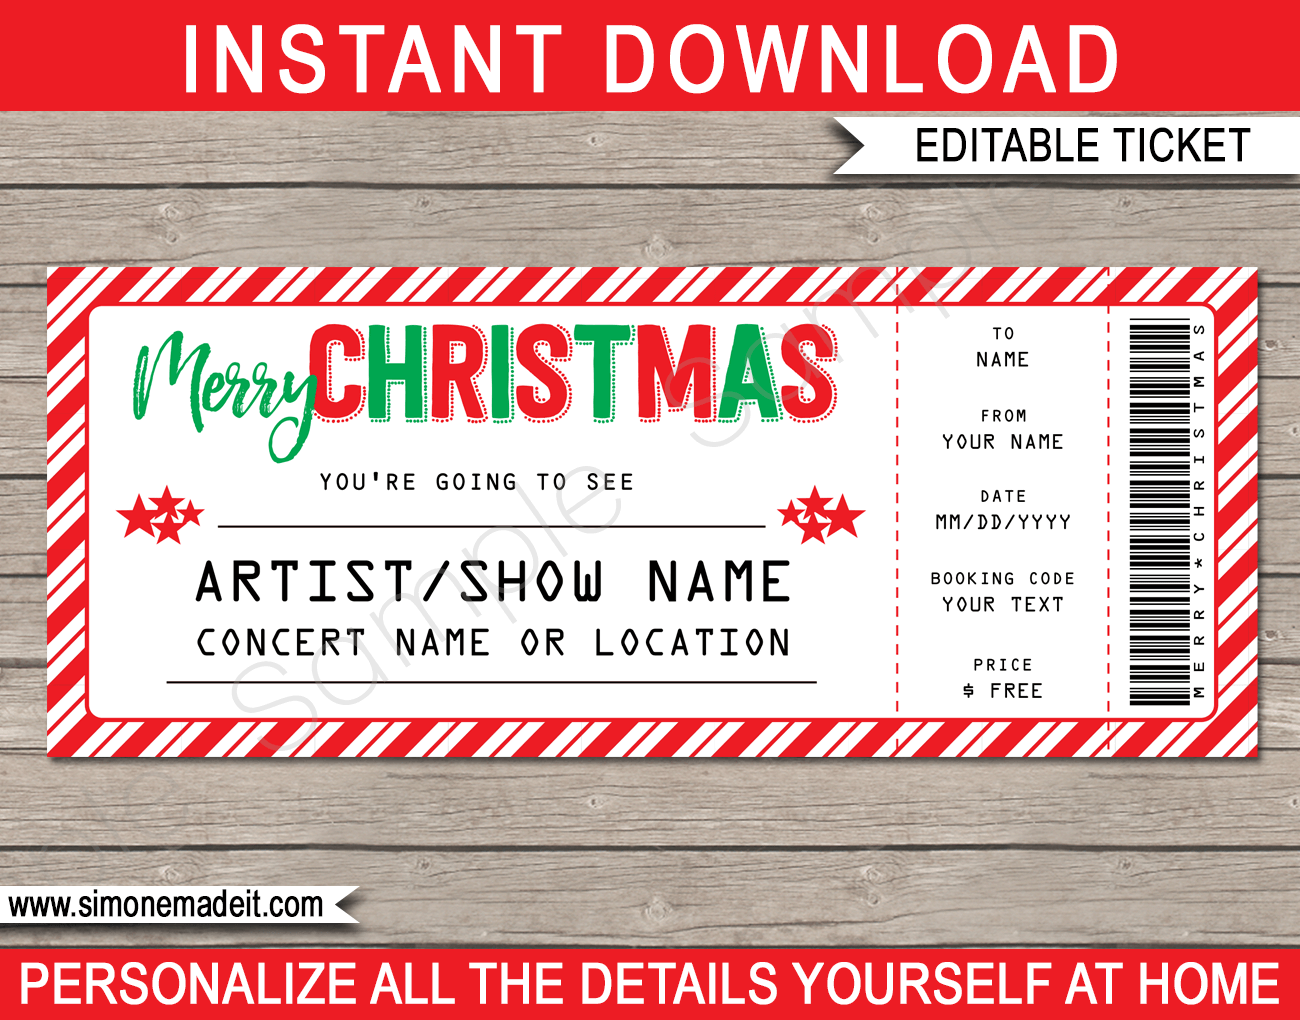 Concert Ticket Template Free Download Pleasing Christmas Gift Concert Ticket Template  Red Green & White .